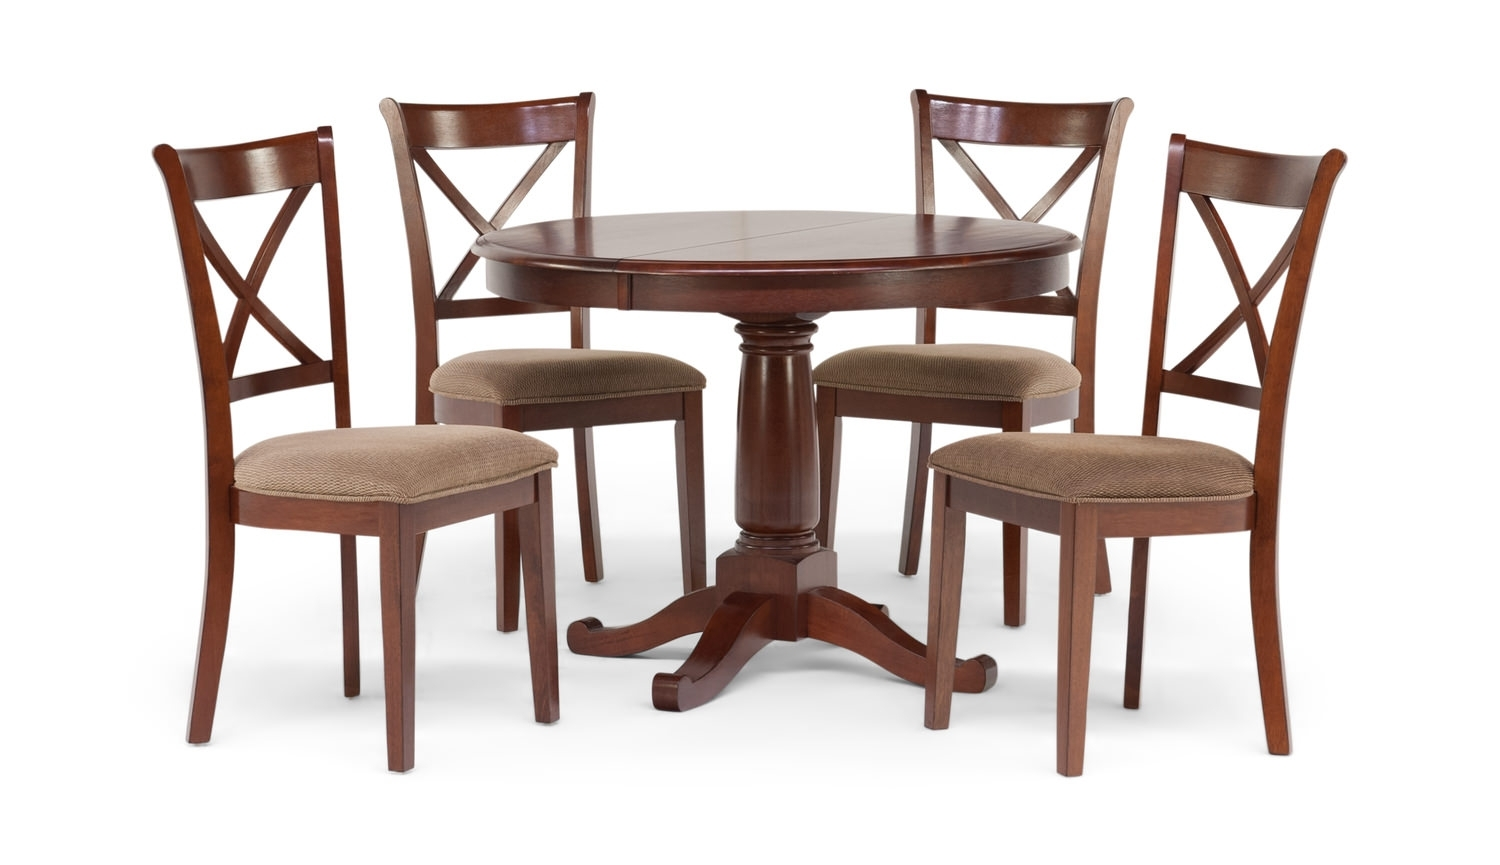 Desoto Table With 4 Chairsthomas Cole | Hom Furniture For 2018 Caden Round Dining Tables (Image 11 of 20)